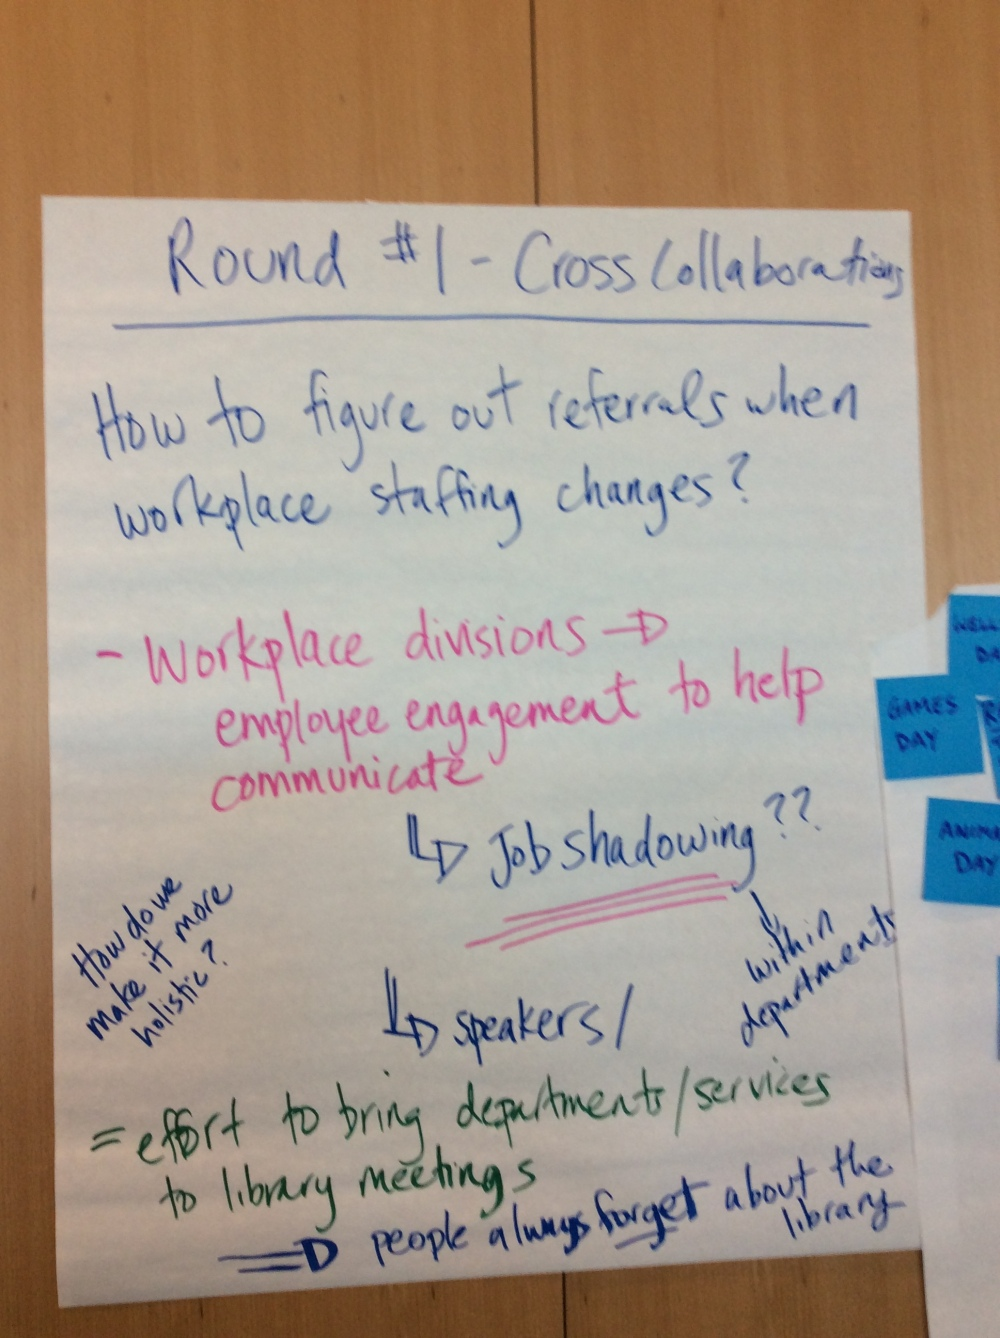 Cross Collaboration discussions.